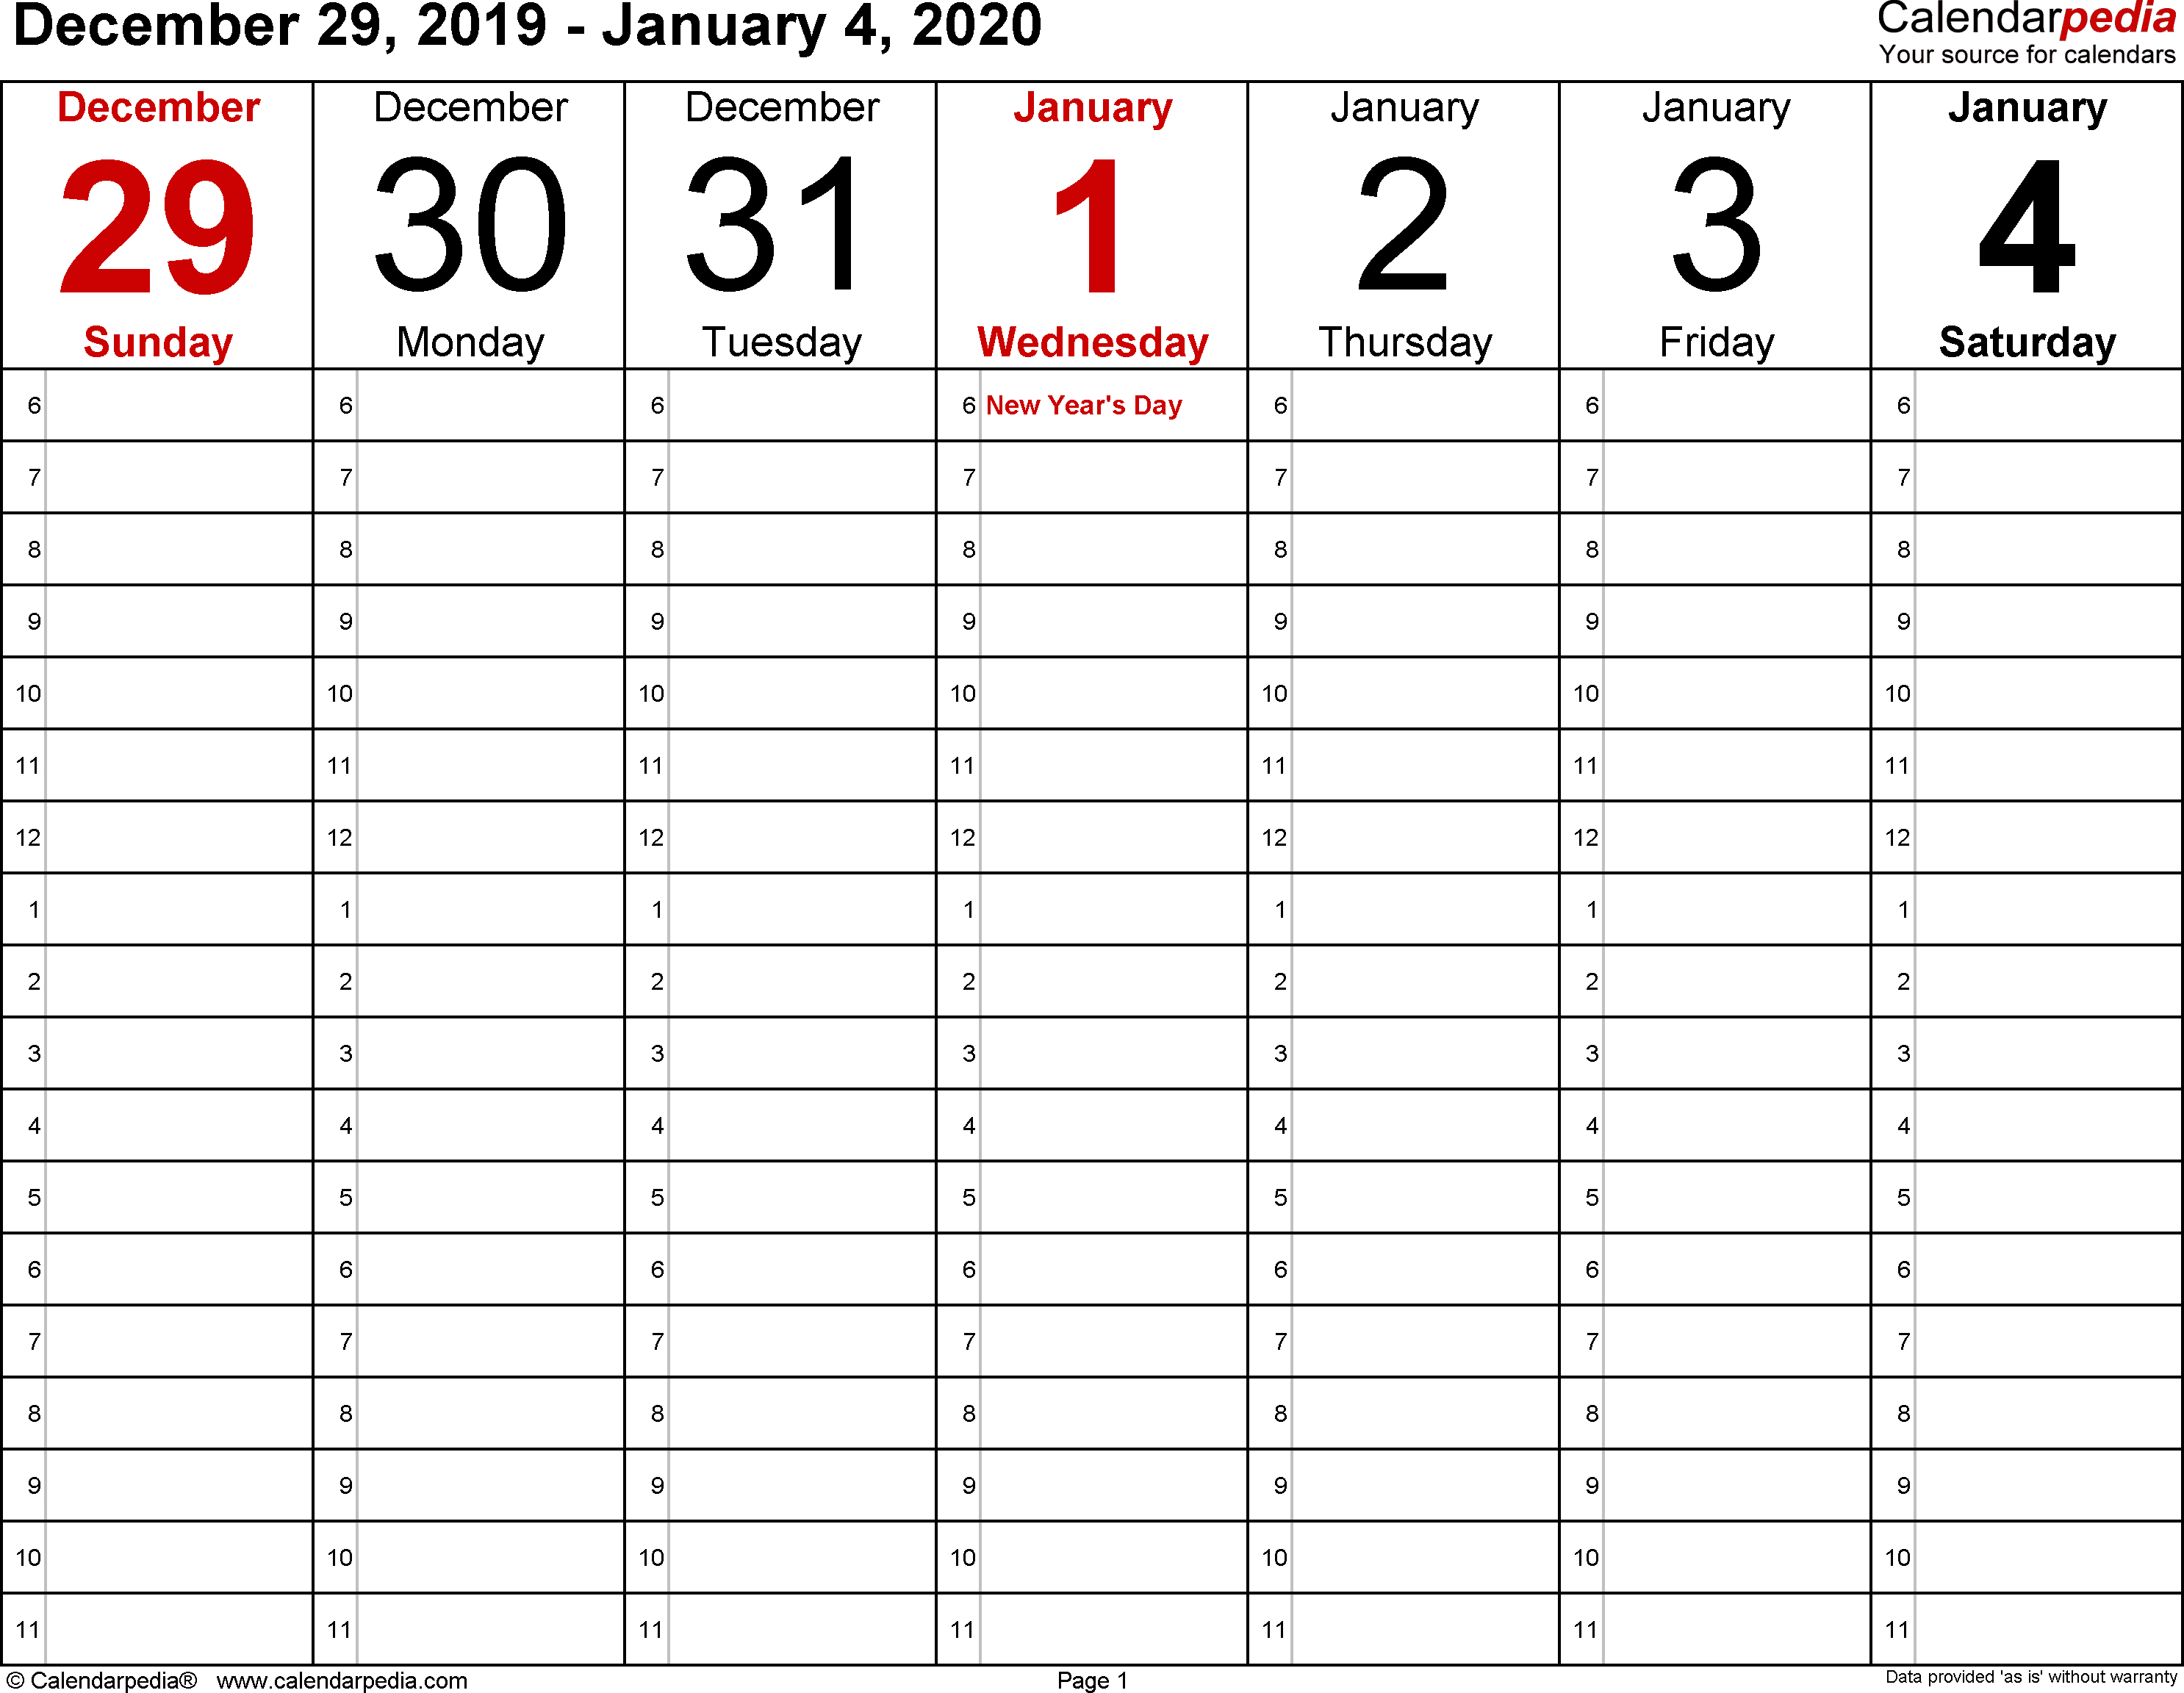 Weekly Calendar 2020 For Word - 12 Free Printable Templates in 2020 Free Printable Calendar Large Numbers